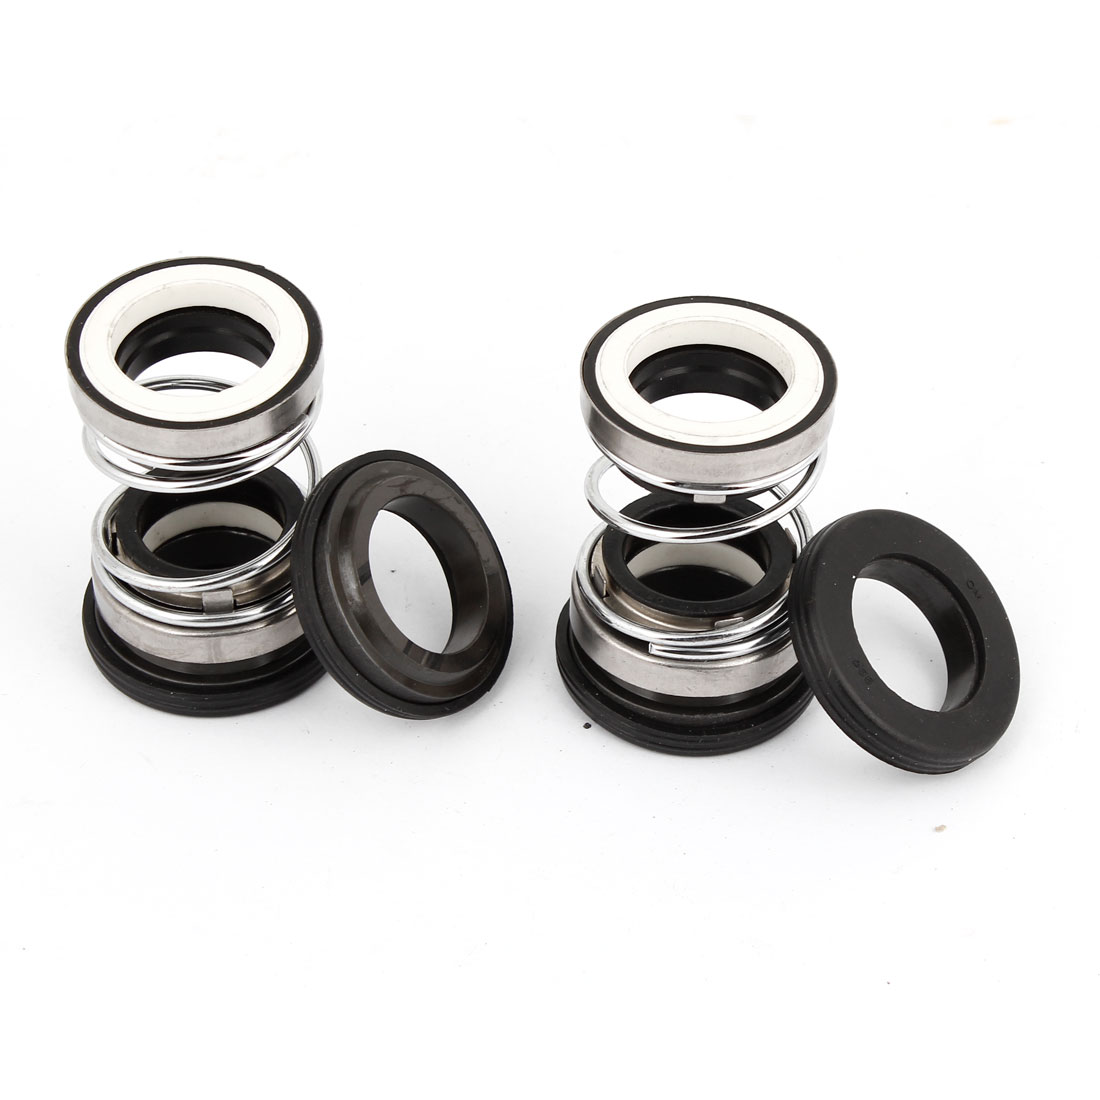 20mm Inner Dia Water Pump Industrial Mechanical Seal Replacement 2 Pcs